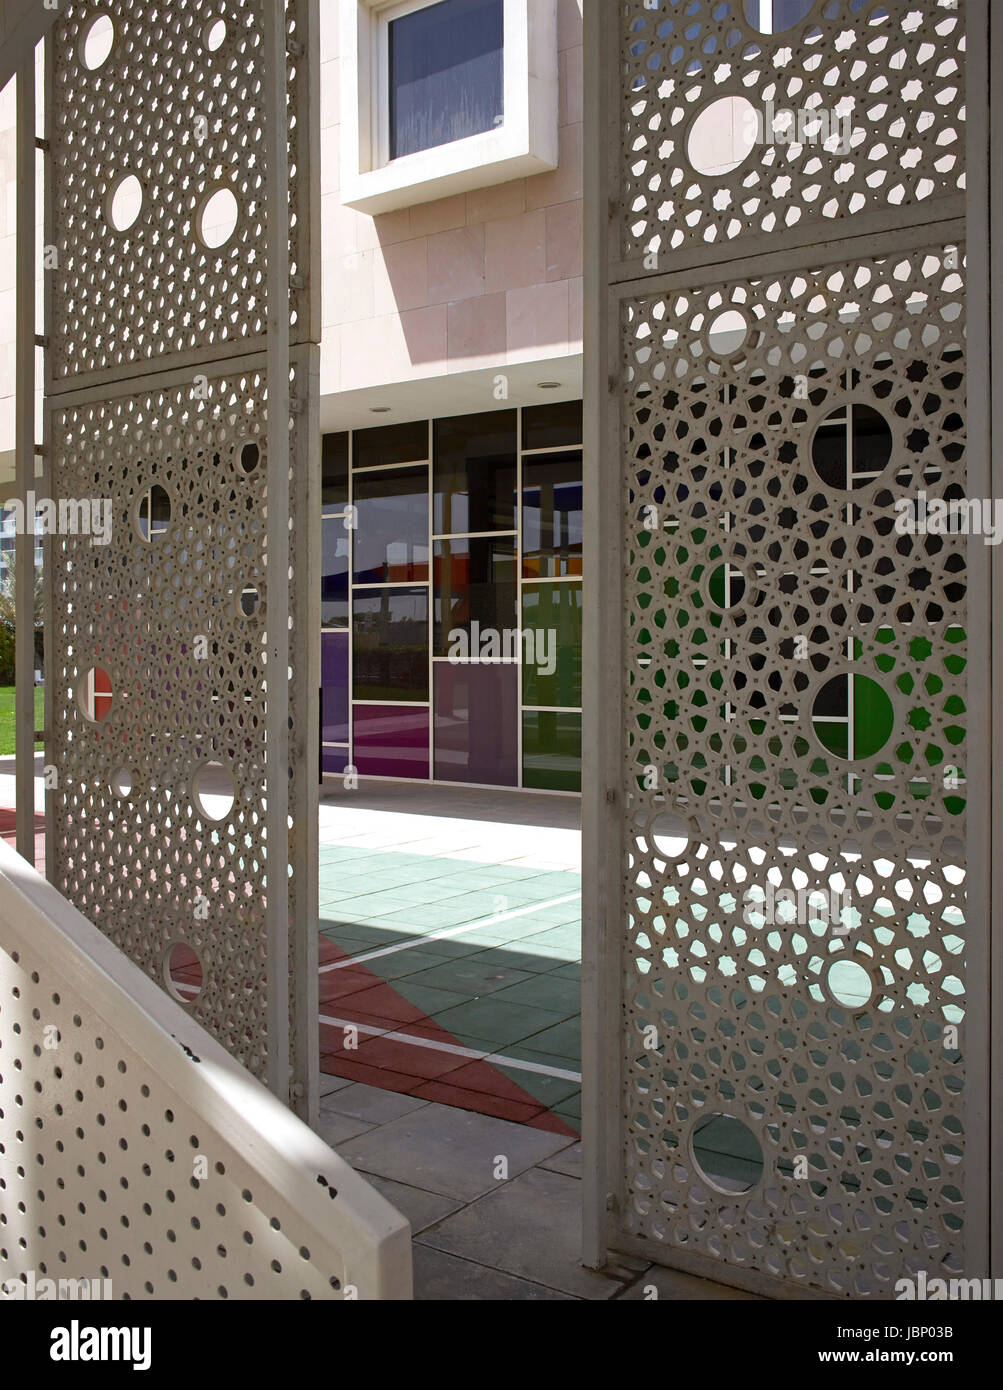 Looking Through Metal Jali. Victory Heights Primary School, Dubai, United  Arab Emirates. Architect: R+D Studio , 2016.